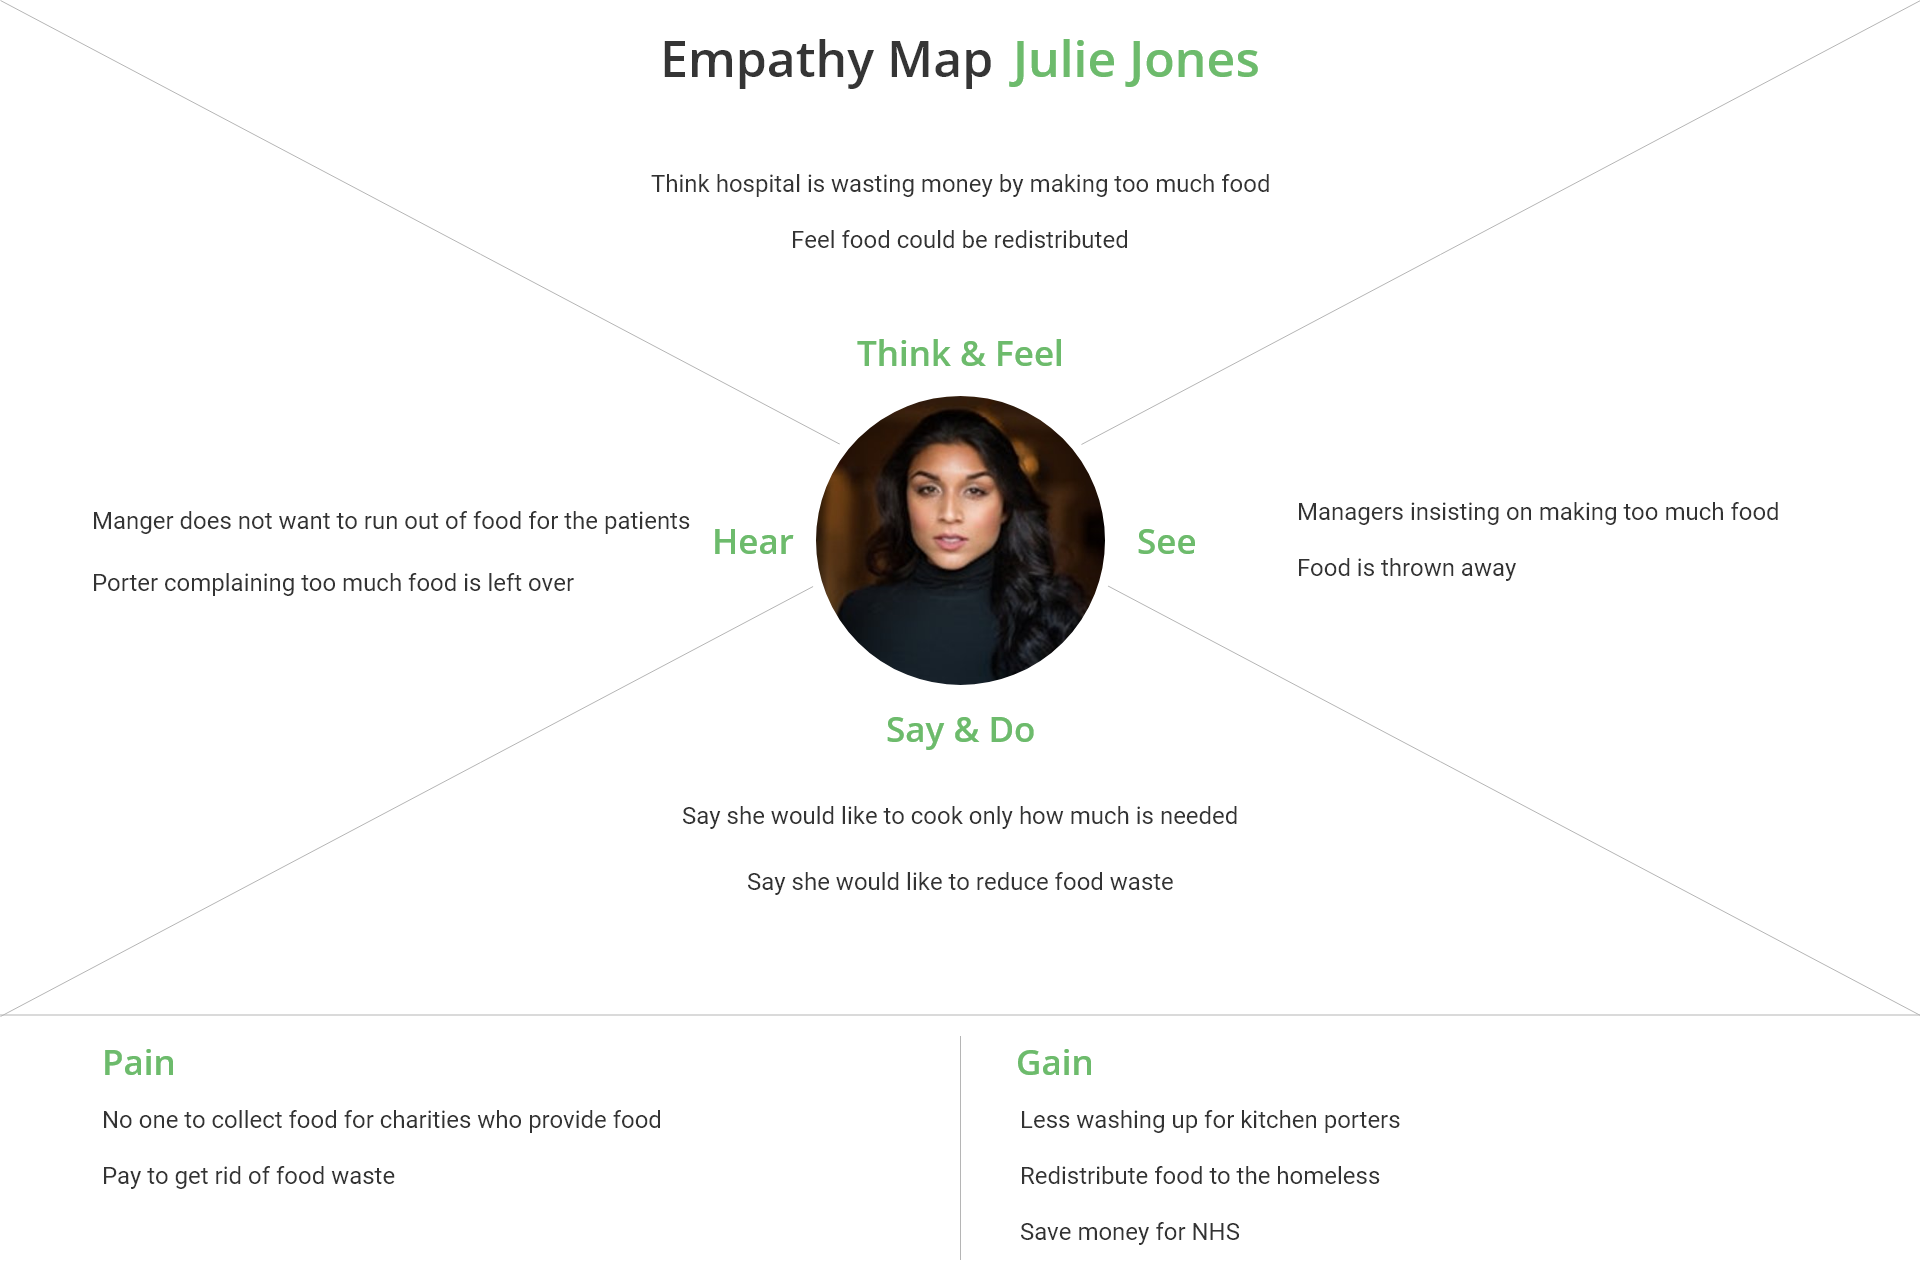 empathy map Julie Jones